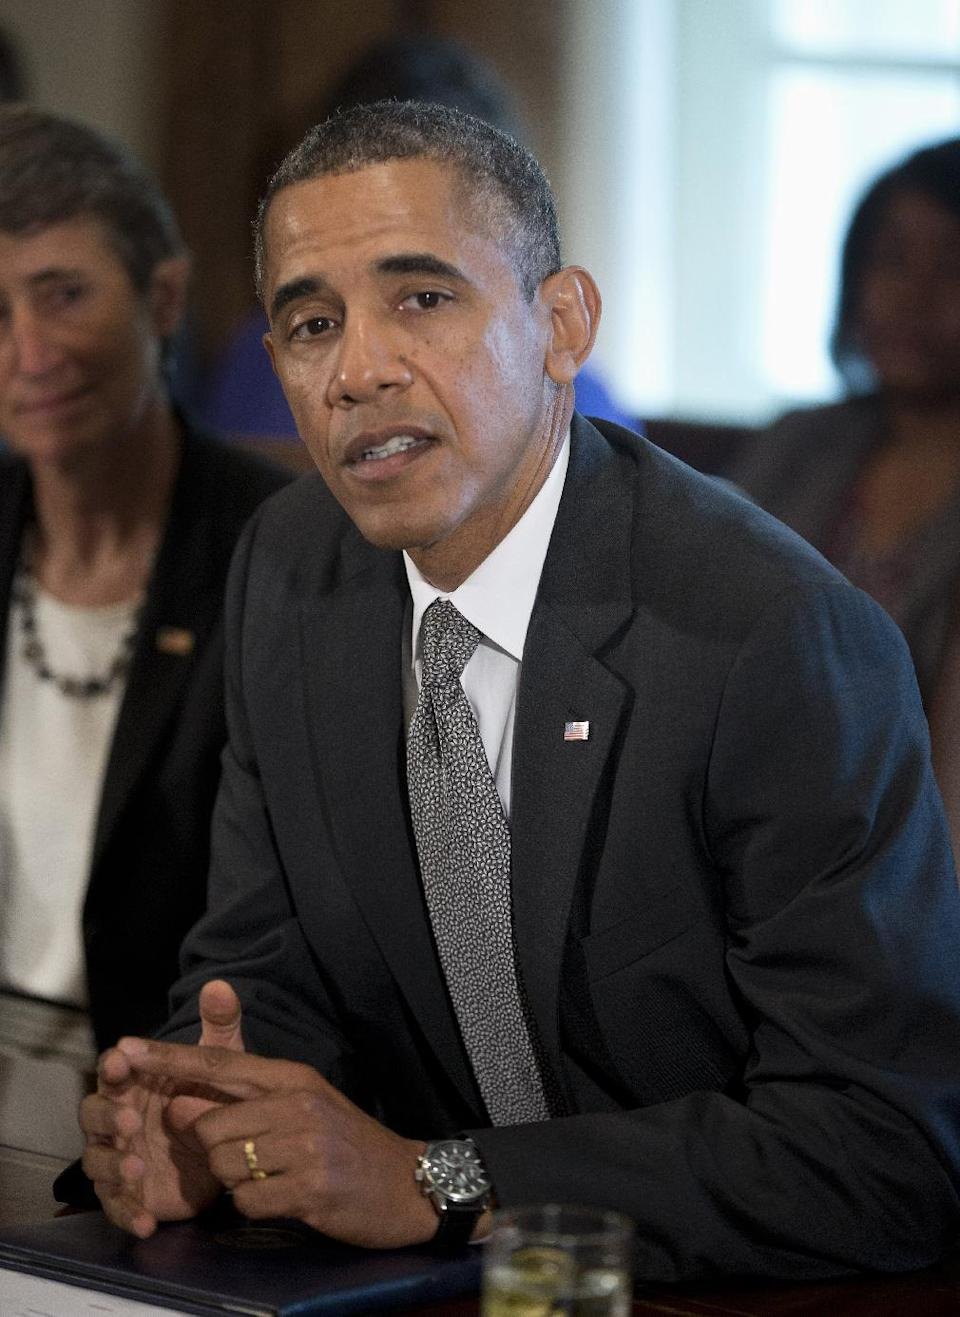 President Barack Obama speaks to members of the media before a cabinet meeting, Thursday, Sept. 12, 2013, in the Cabinet Room of the White House in Washington, Interior Secretary Sally Jewell is at left. (AP Photo/Pablo Martinez Monsivais)